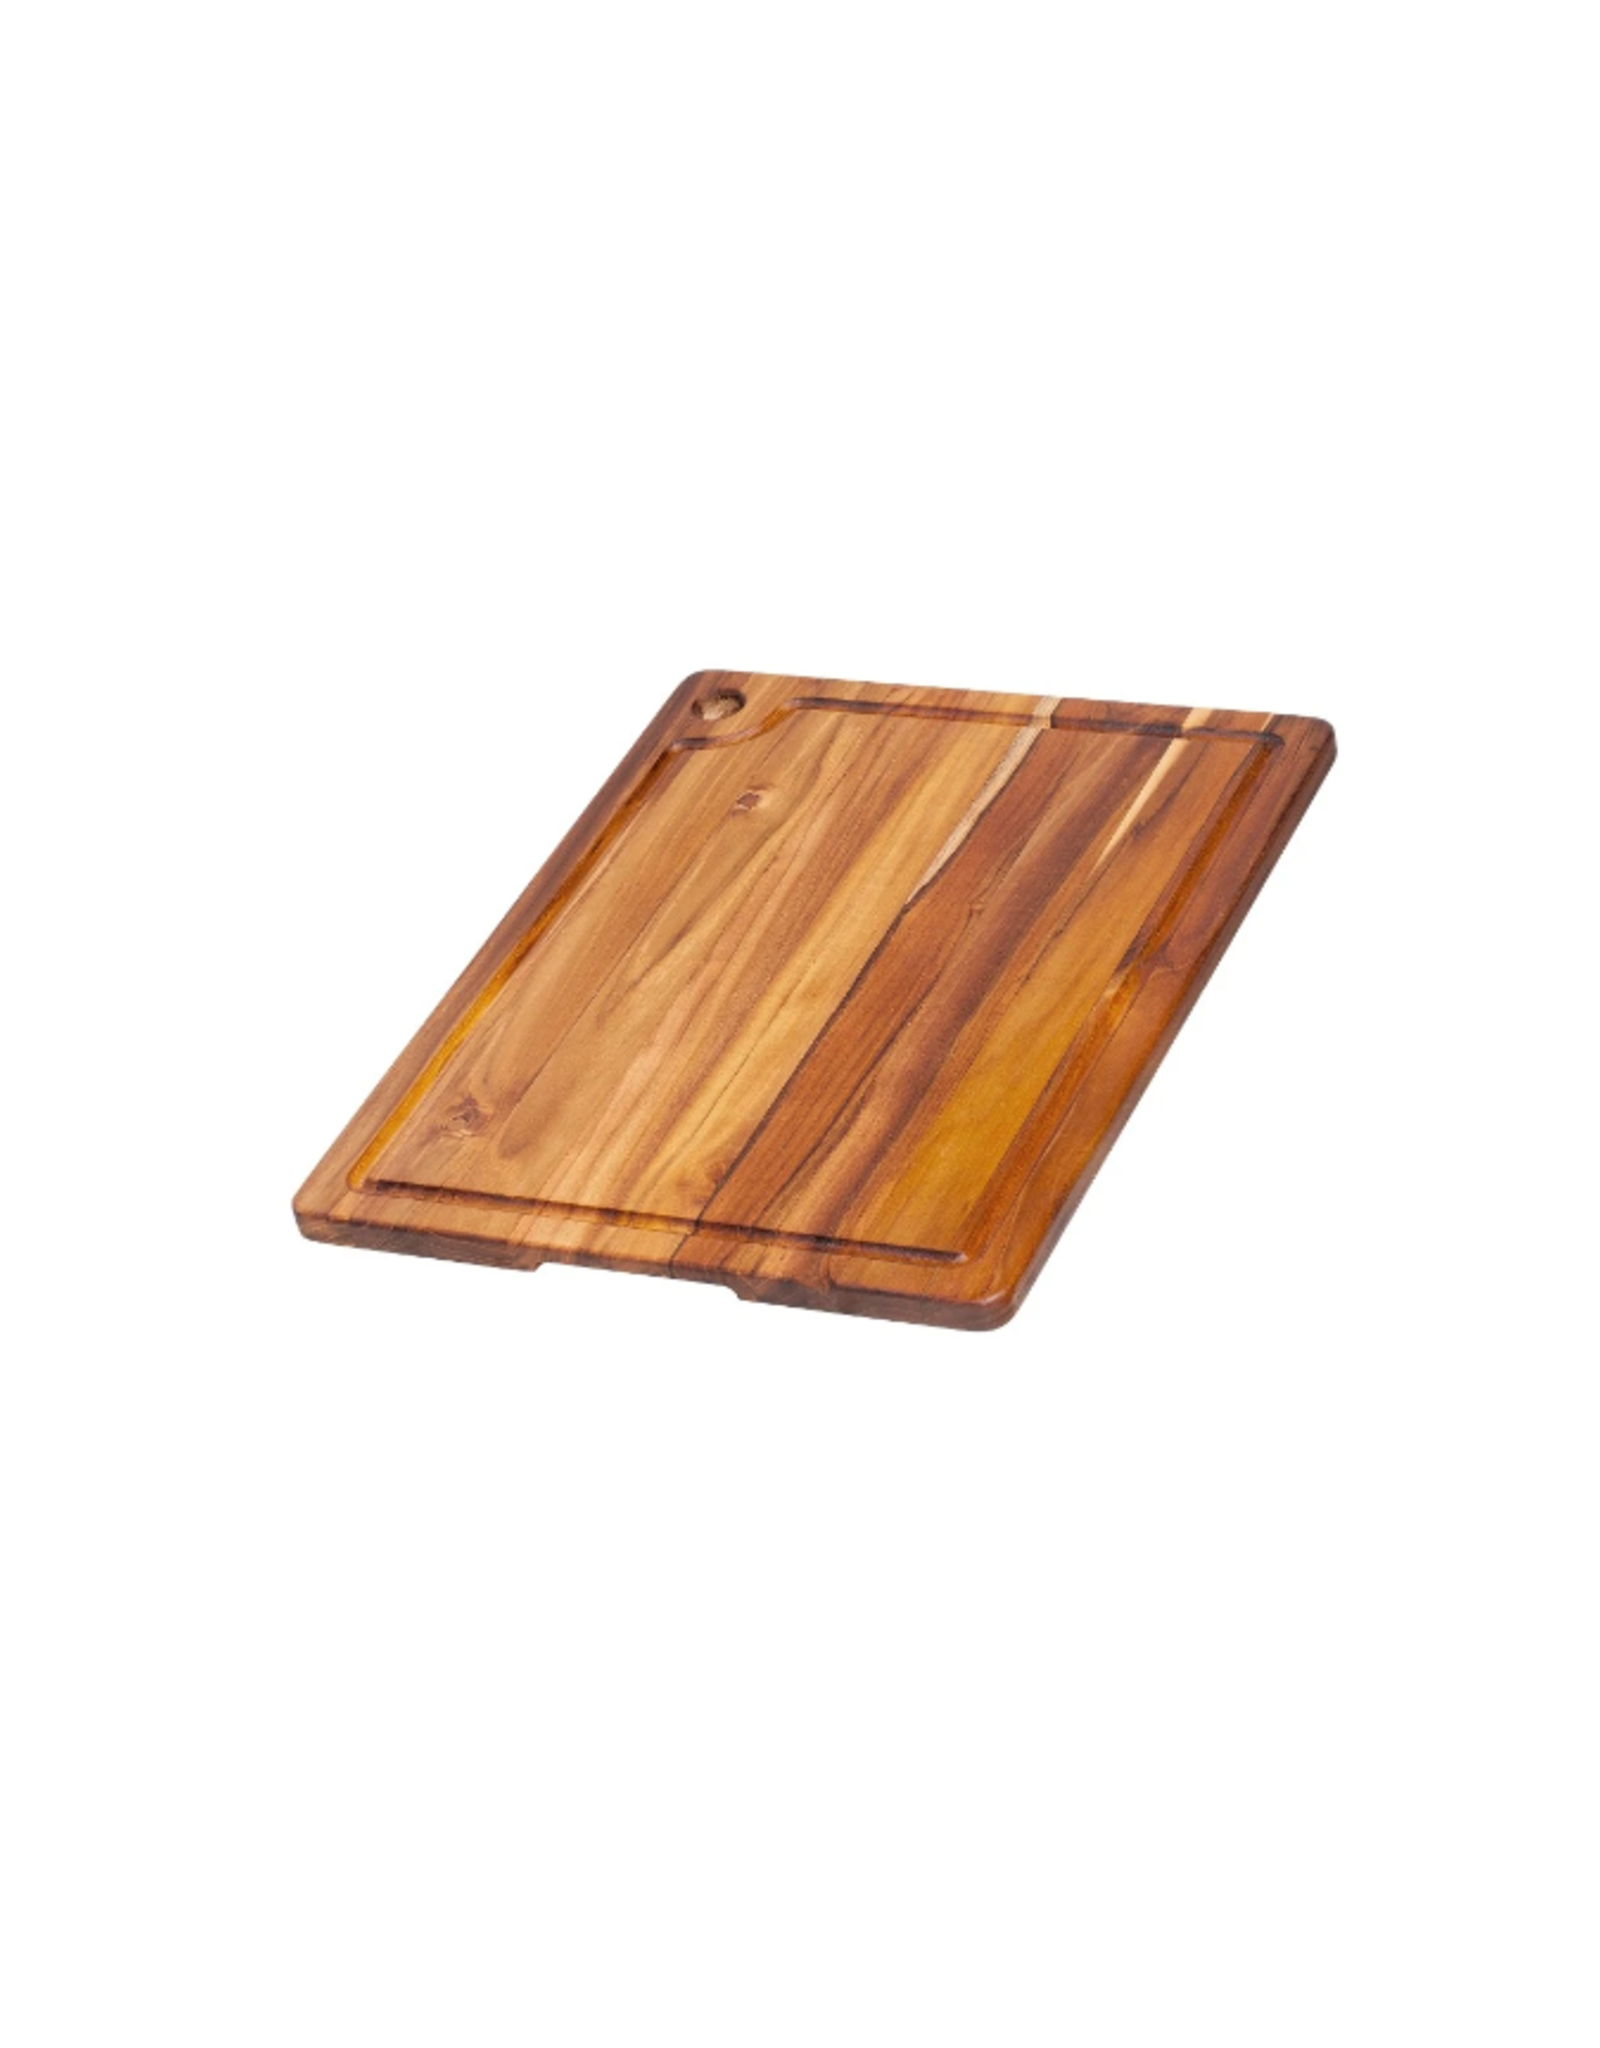 Teak Haus Corner Hole and Juice Groove 18x14x.75